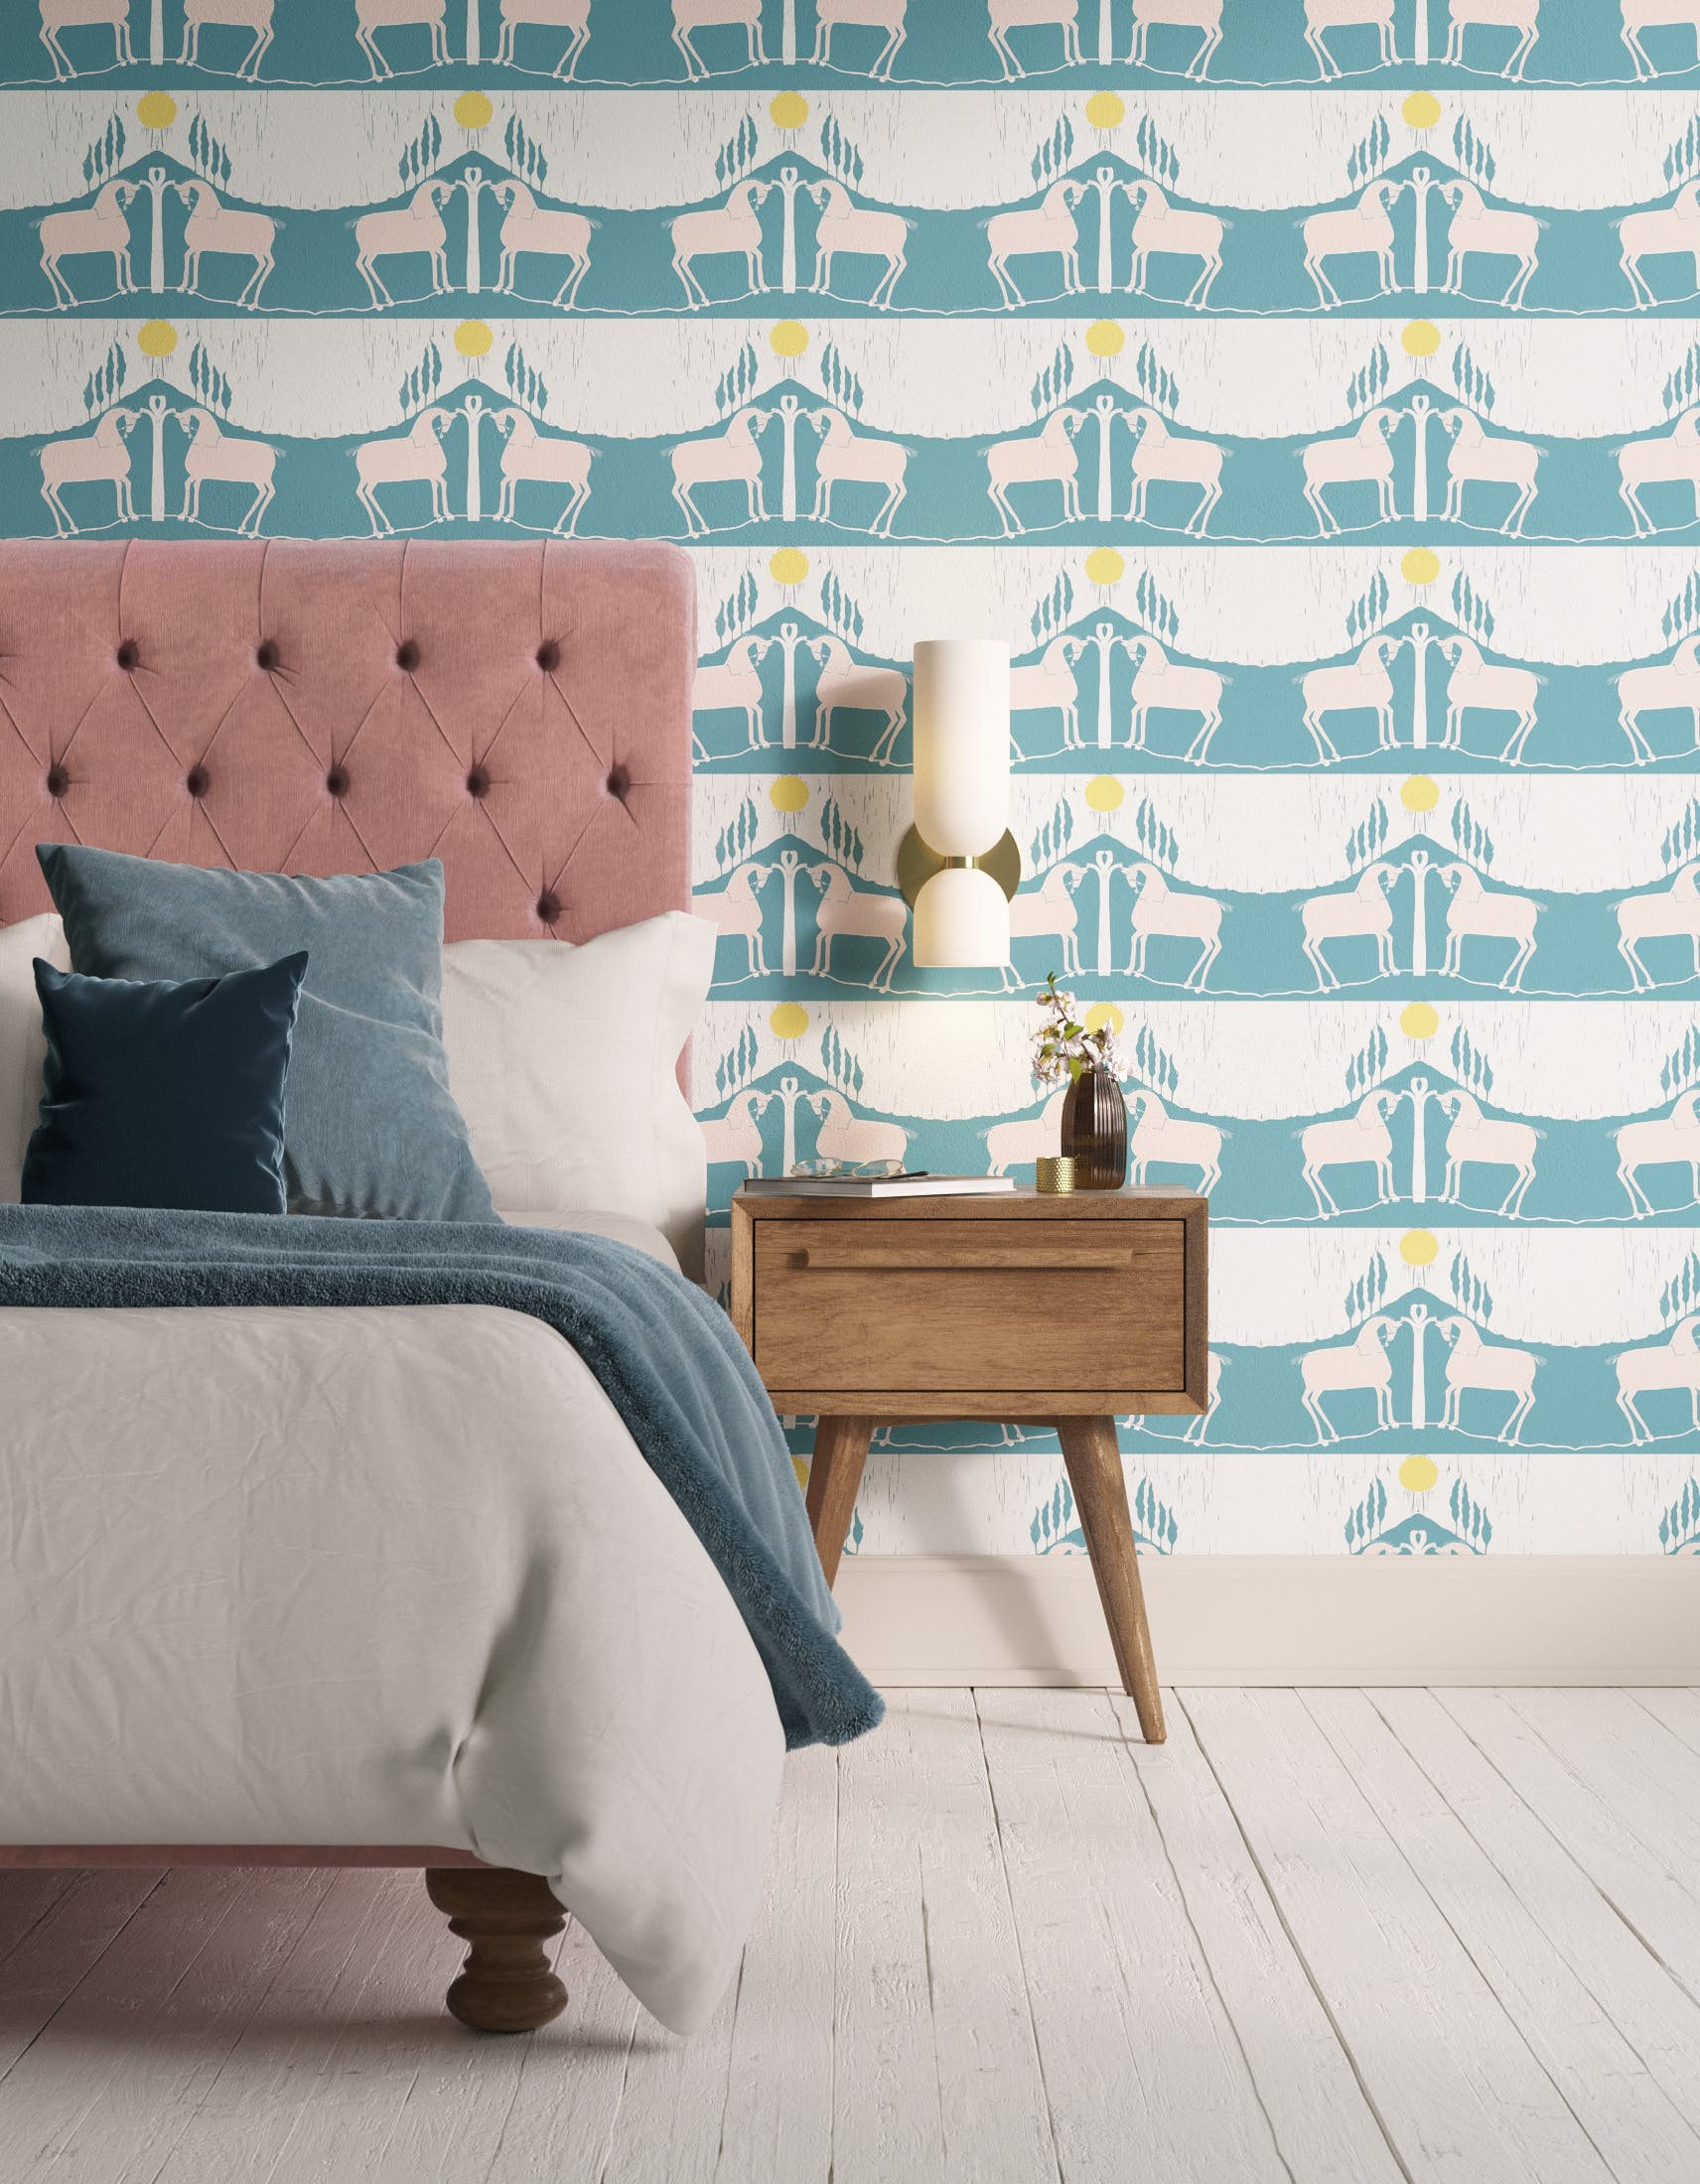 Bedroom decorated with Lick x Annika Reed Western 01 teal and yellow animal wallpaper